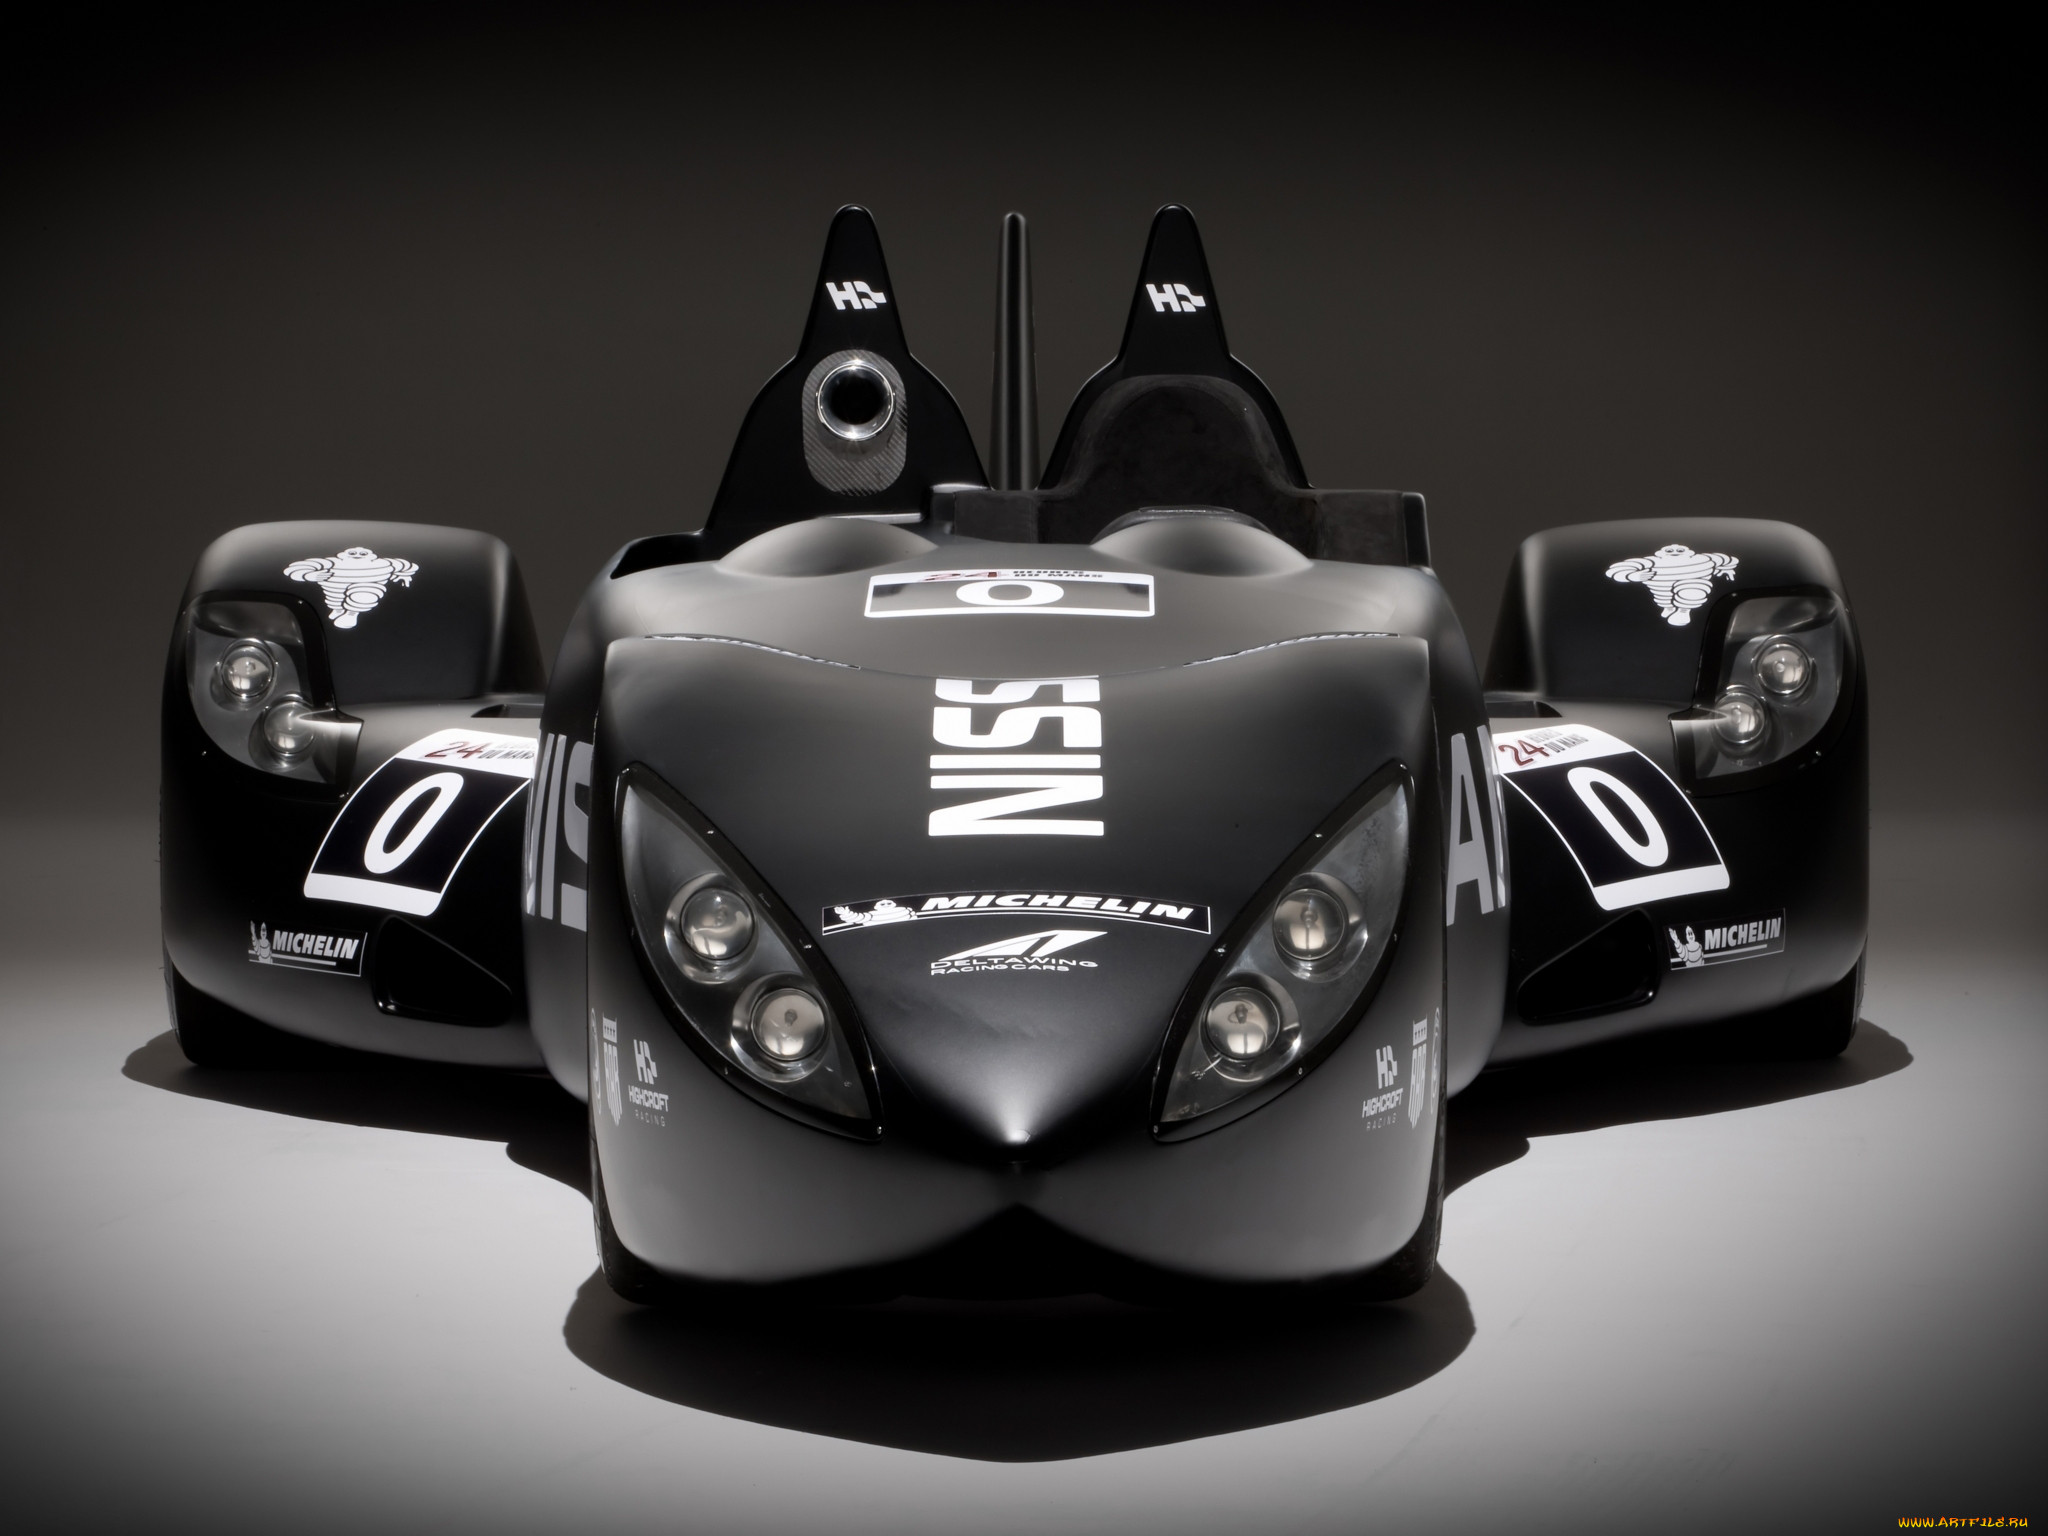 nissan deltawing experimental concept 2012, автомобили, nissan, datsun, deltawing, experimental, concept, 2012